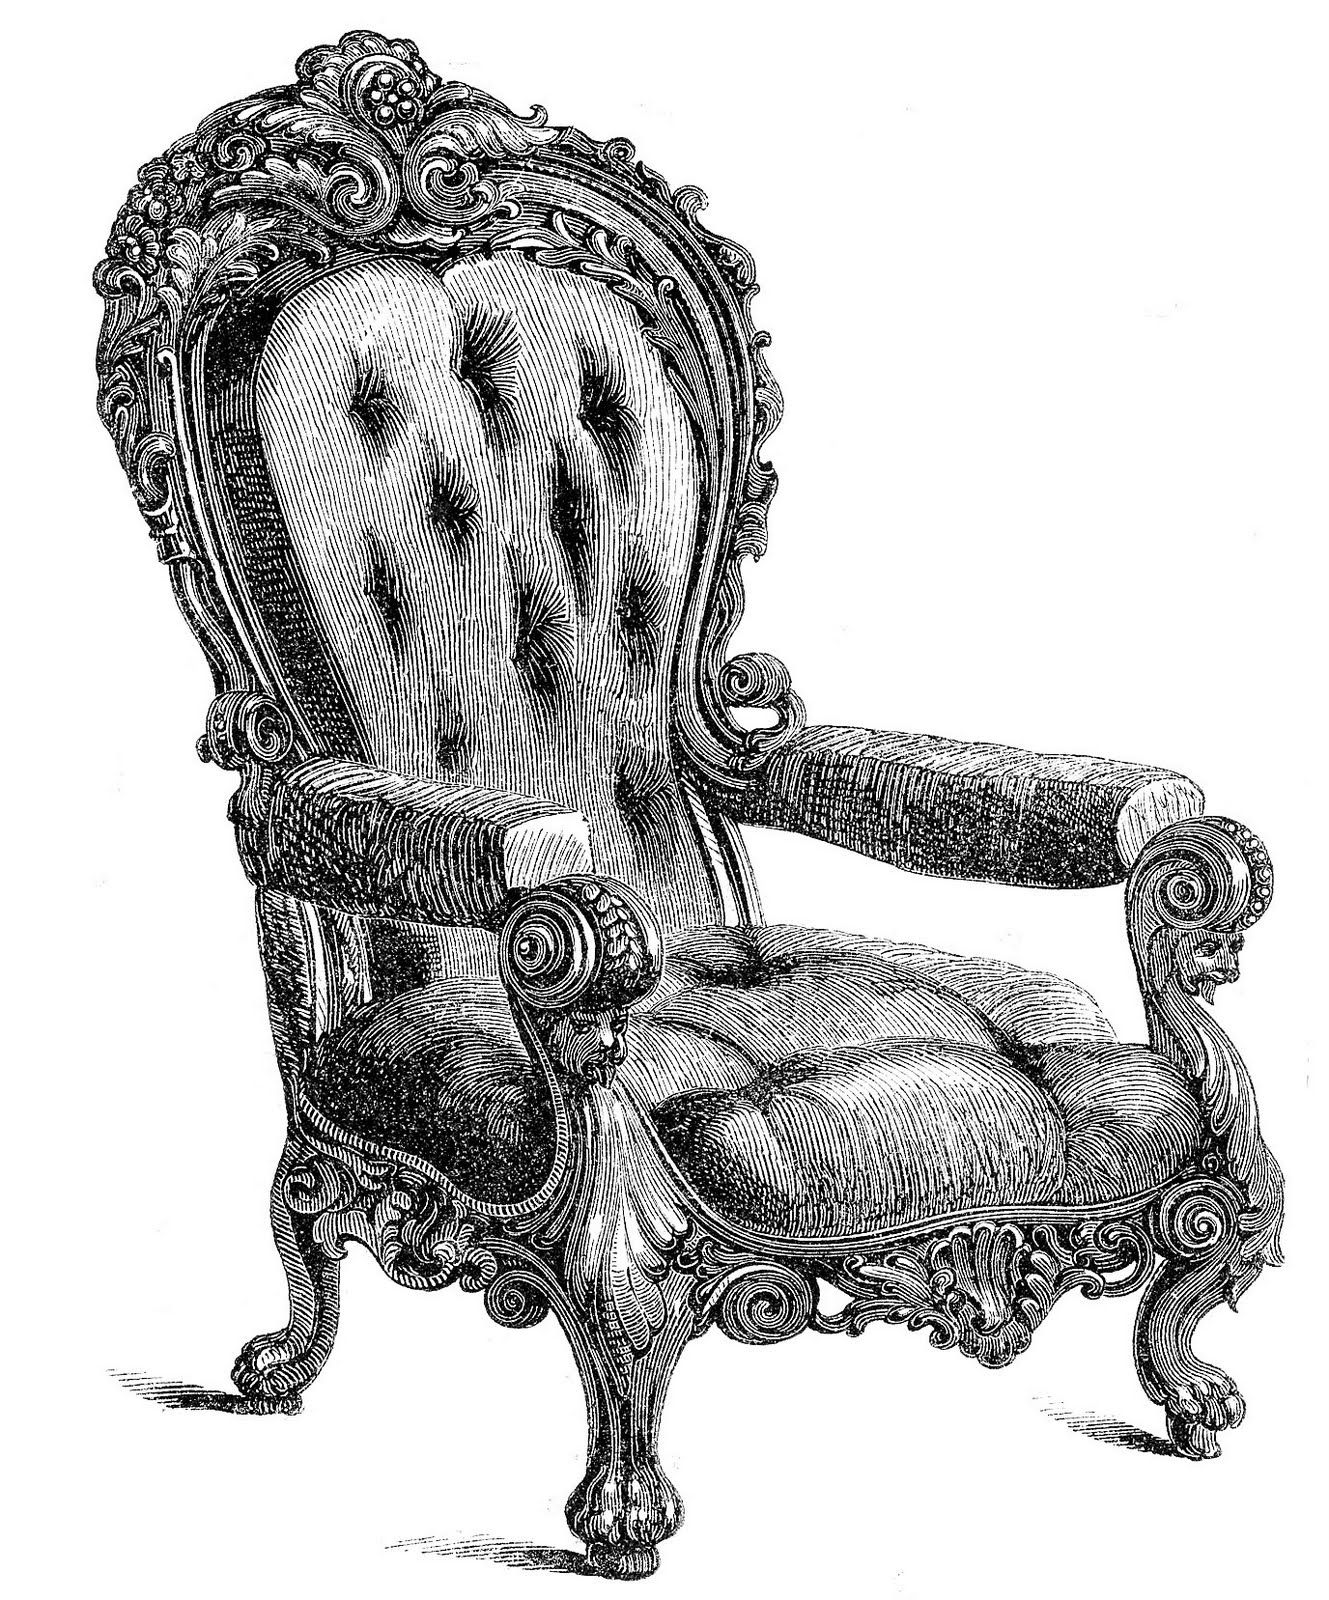 Antique chairs design - Vintage Clip Art 2 Fancy Chairs The Graphics Fairy